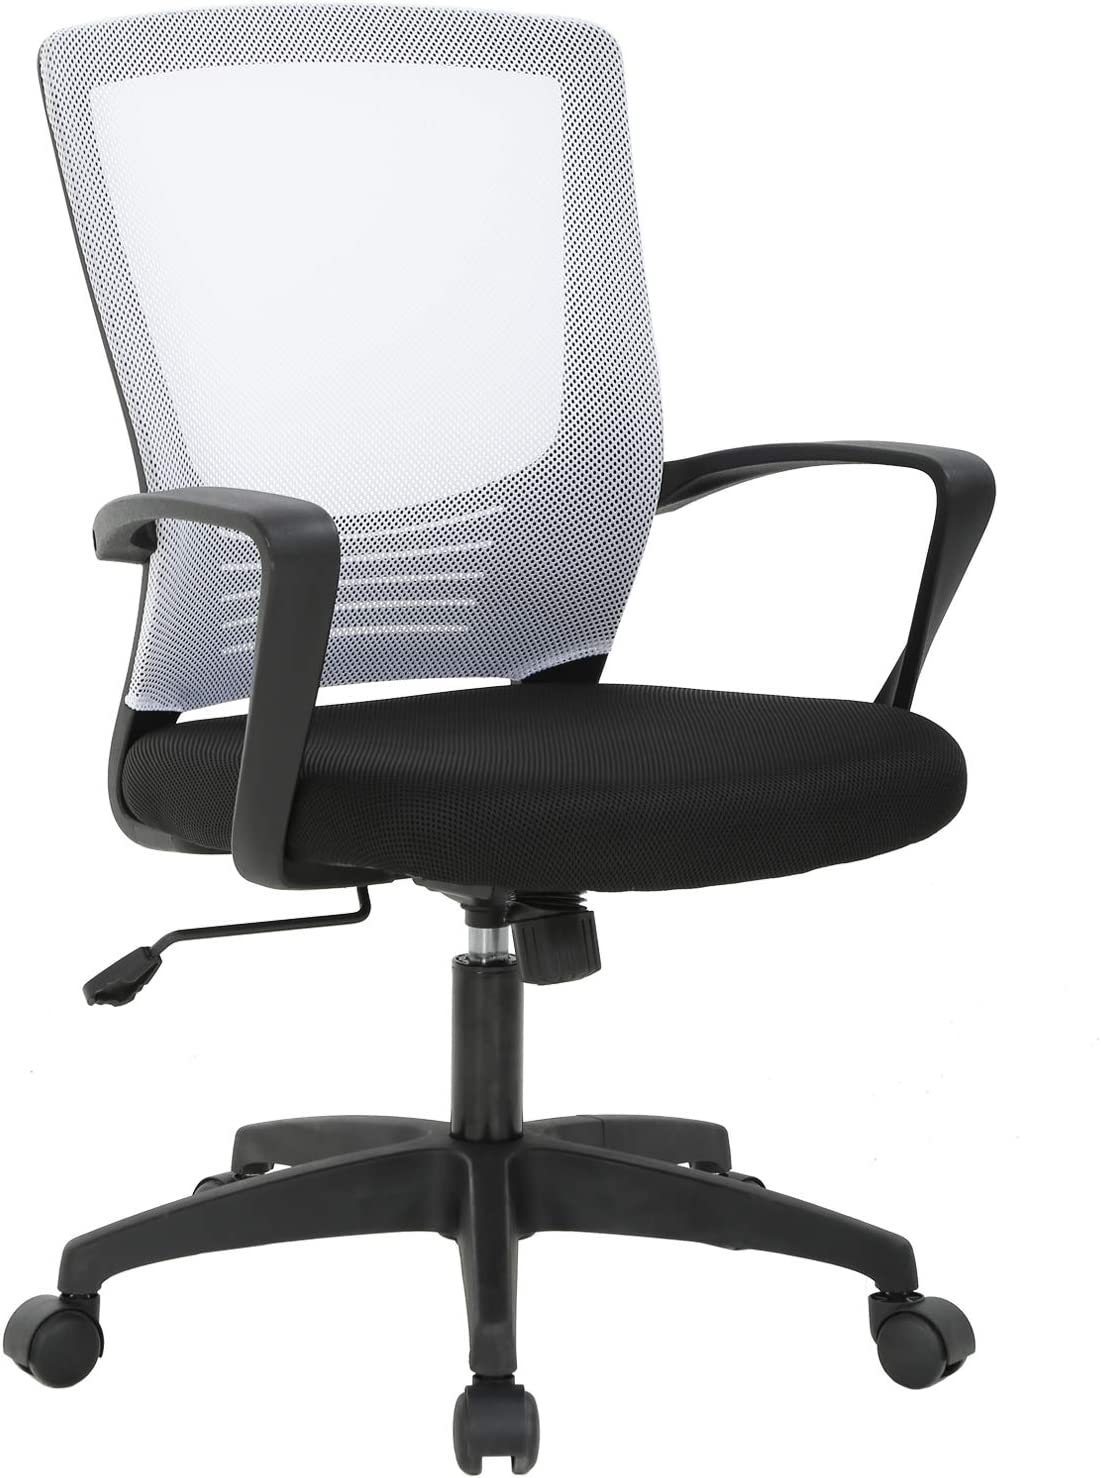 Ergonomic Office Chair Desk Chair Mesh Computer Chair Rolling Swivel Modern Executive Chair Adjustable Stool Back Support for Women&Men, White